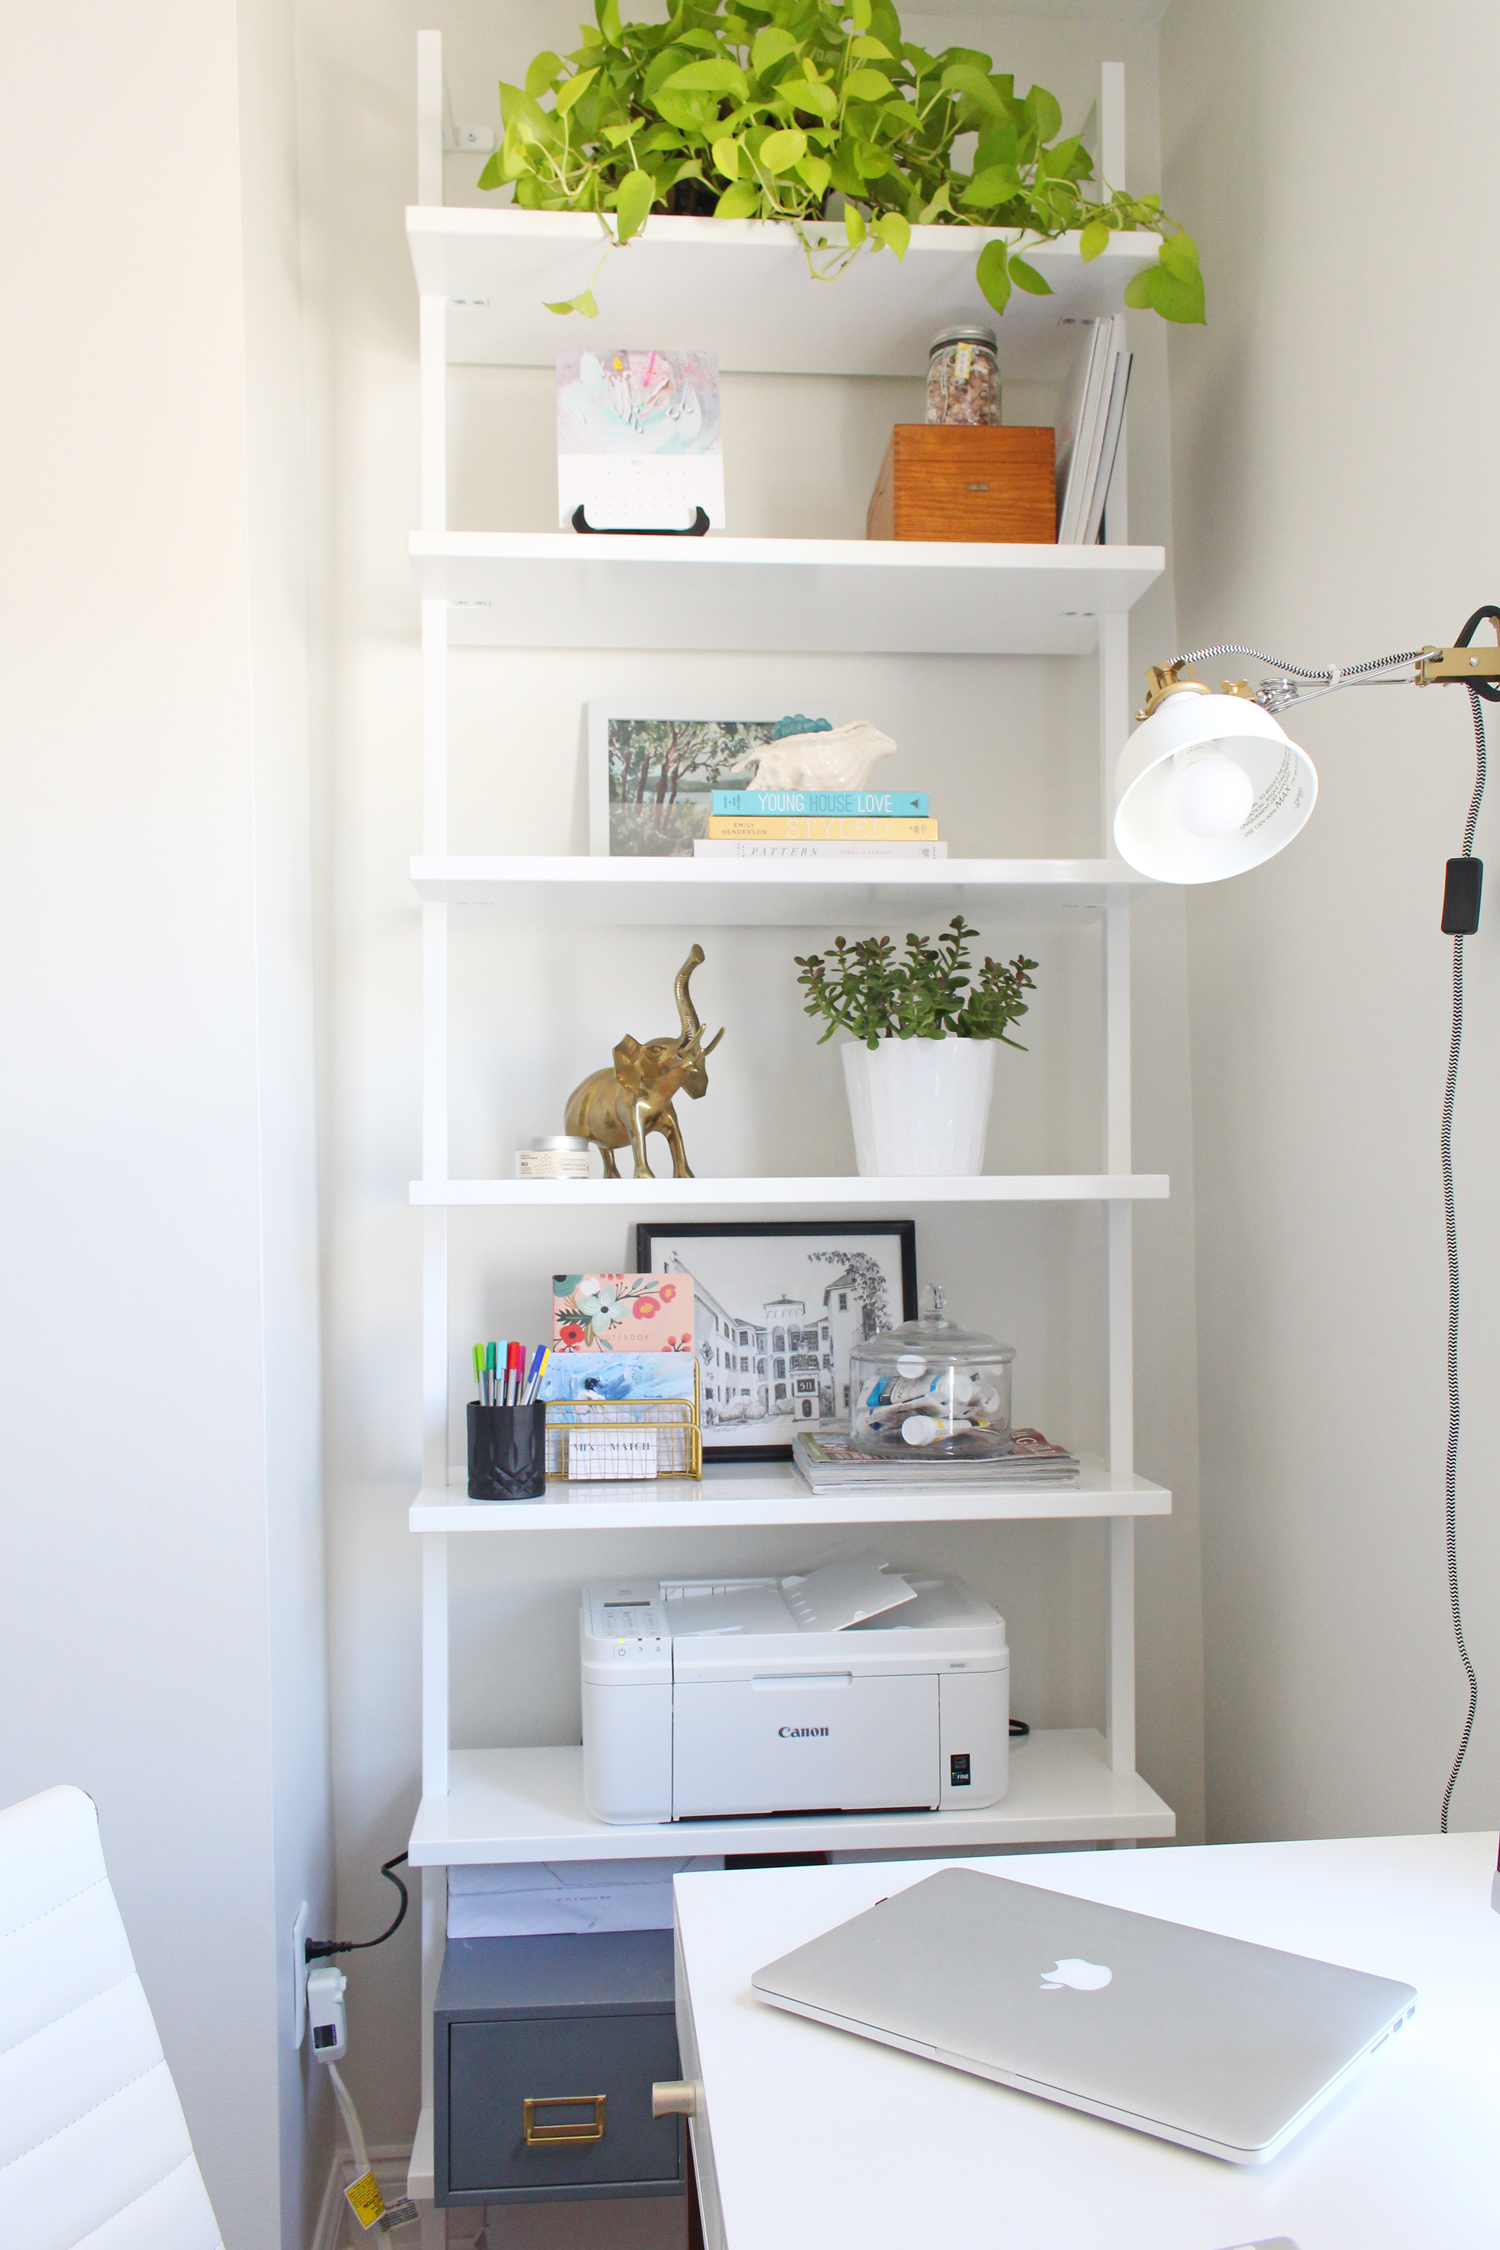 The CB2 Stairway bookcase is the perfect modern storage solution in a home office or living space.